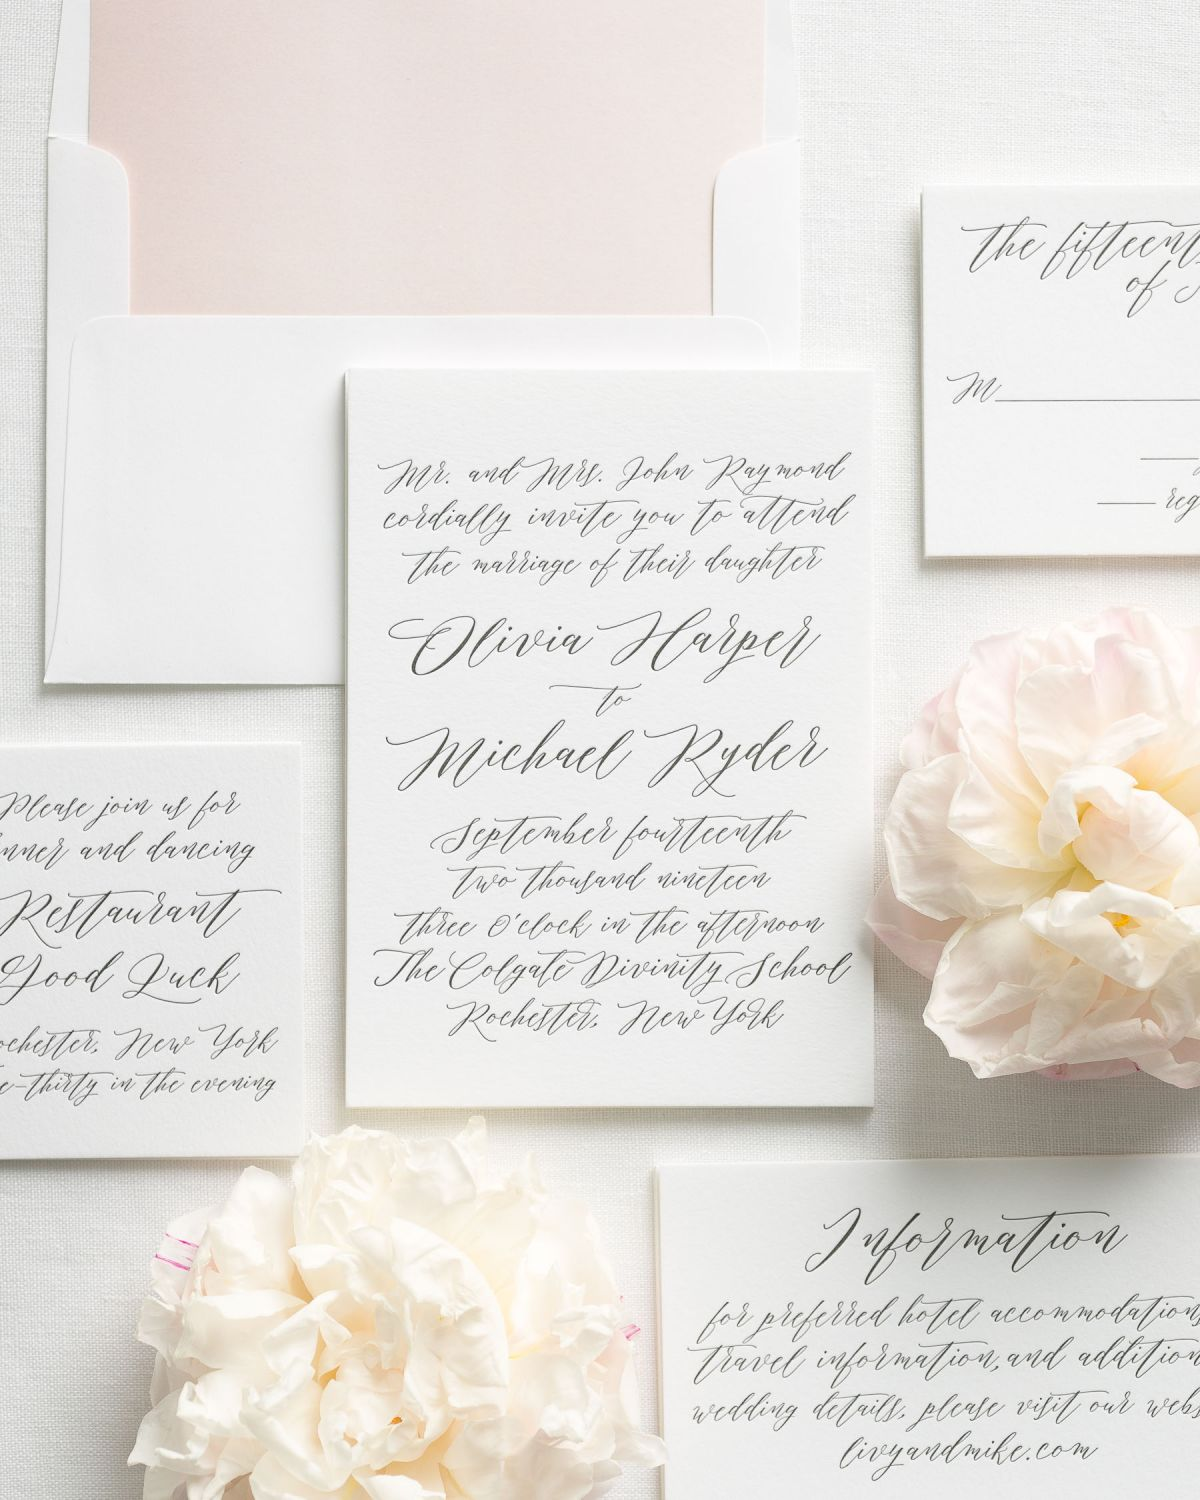 All Script Letterpress Wedding Invitations with Blush Pink Envelope Liner